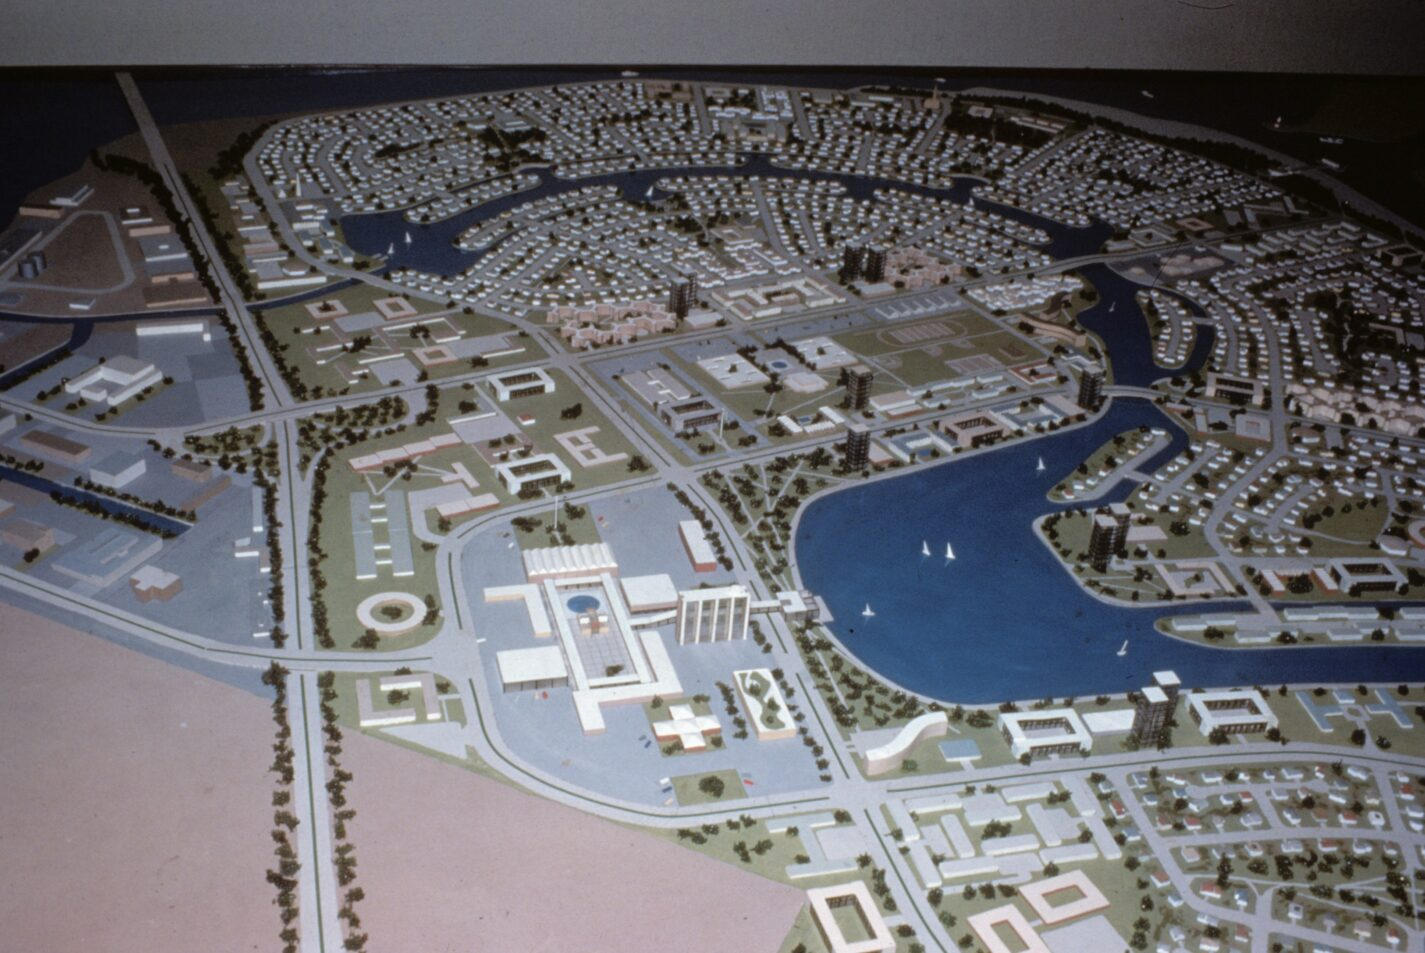 Image of a Foster City Map